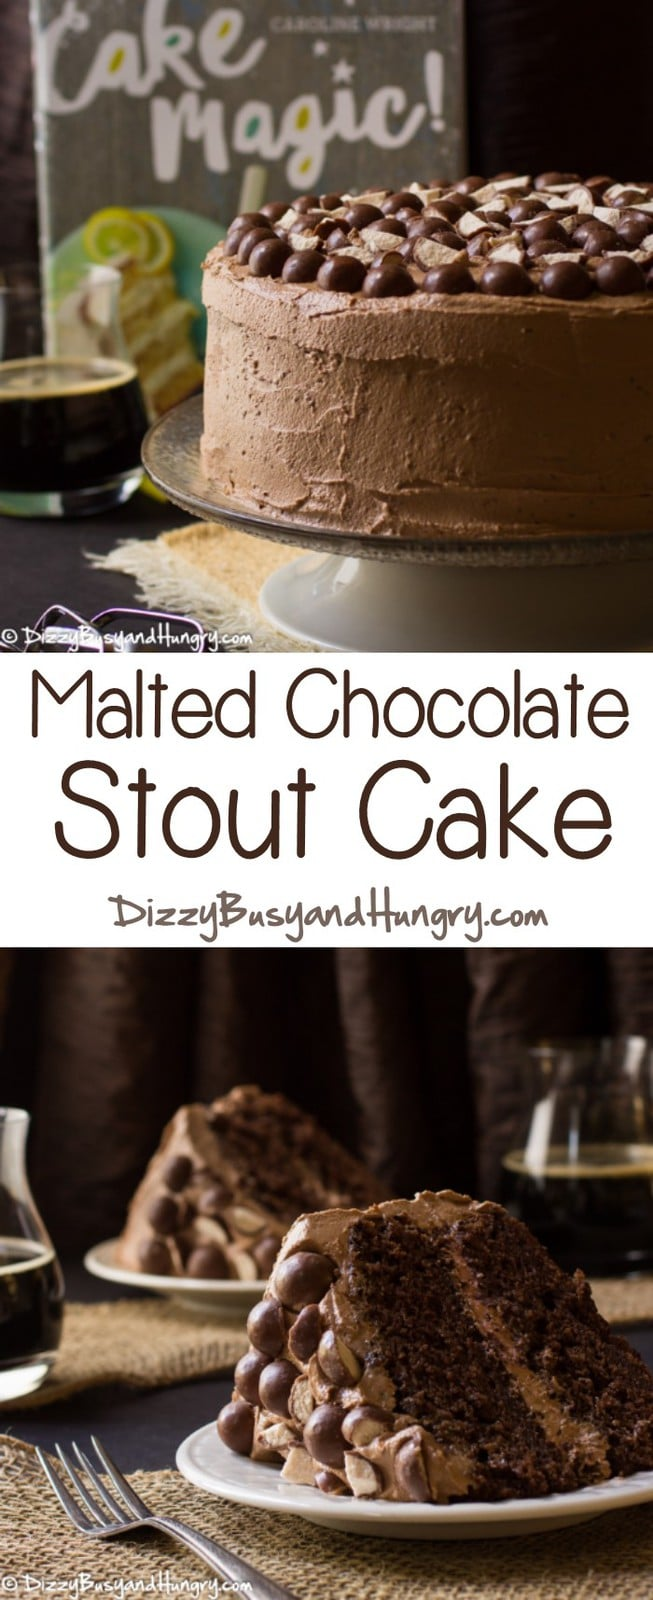 Malted Chocolate Stout Cake #WeekdaySupper | Dizzy Busy and Hungry!